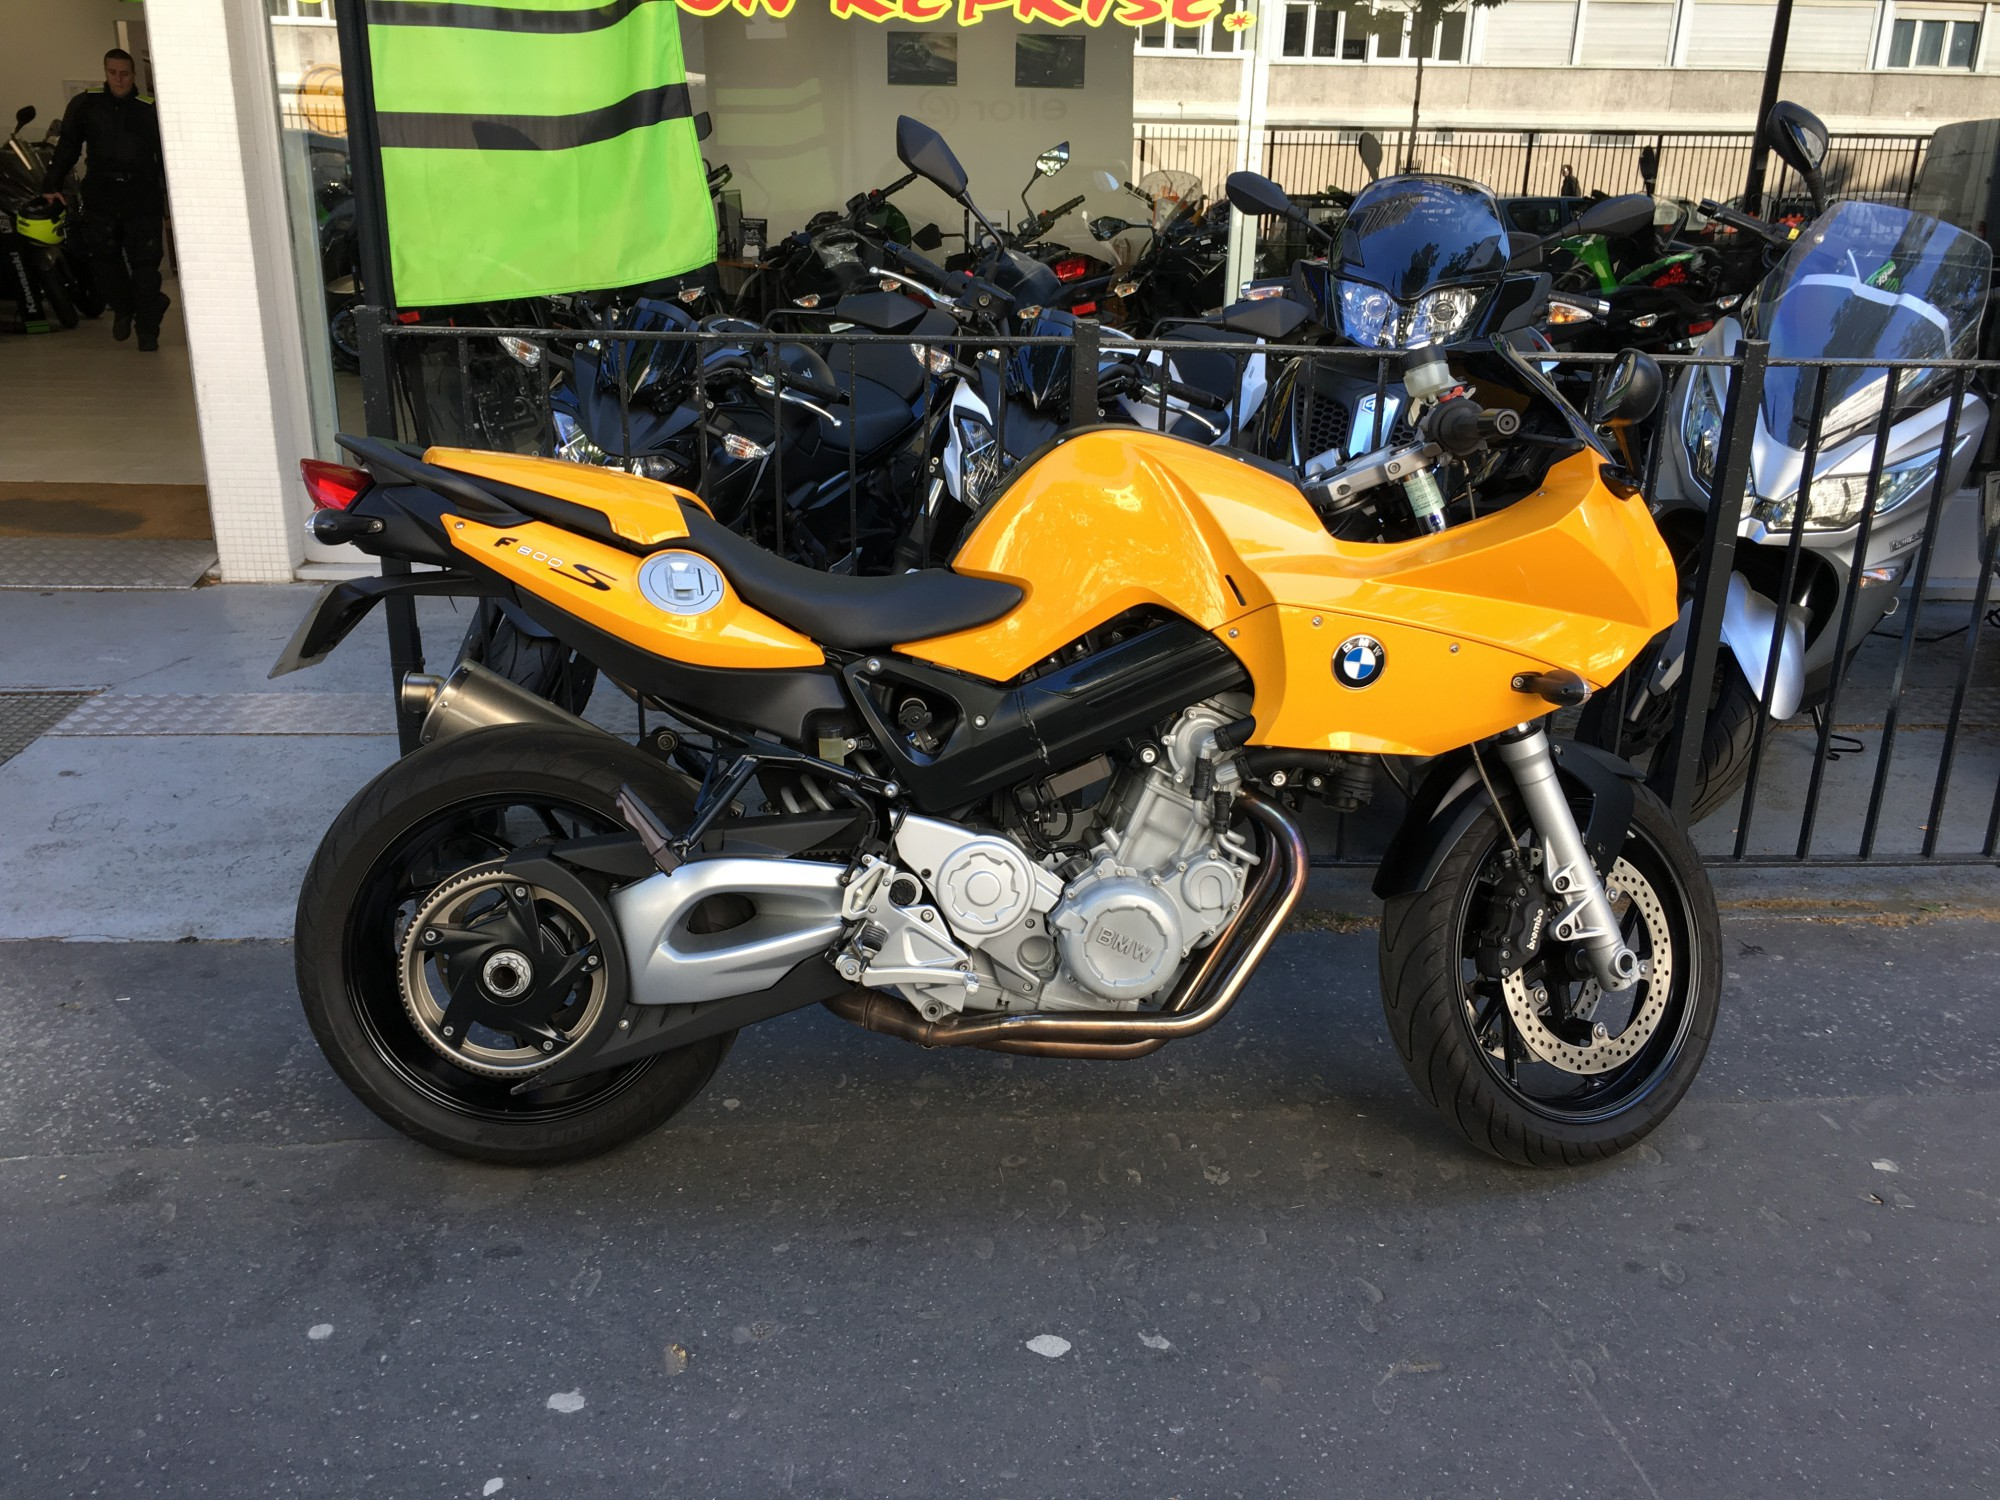 BMW 800 F800 S ABS